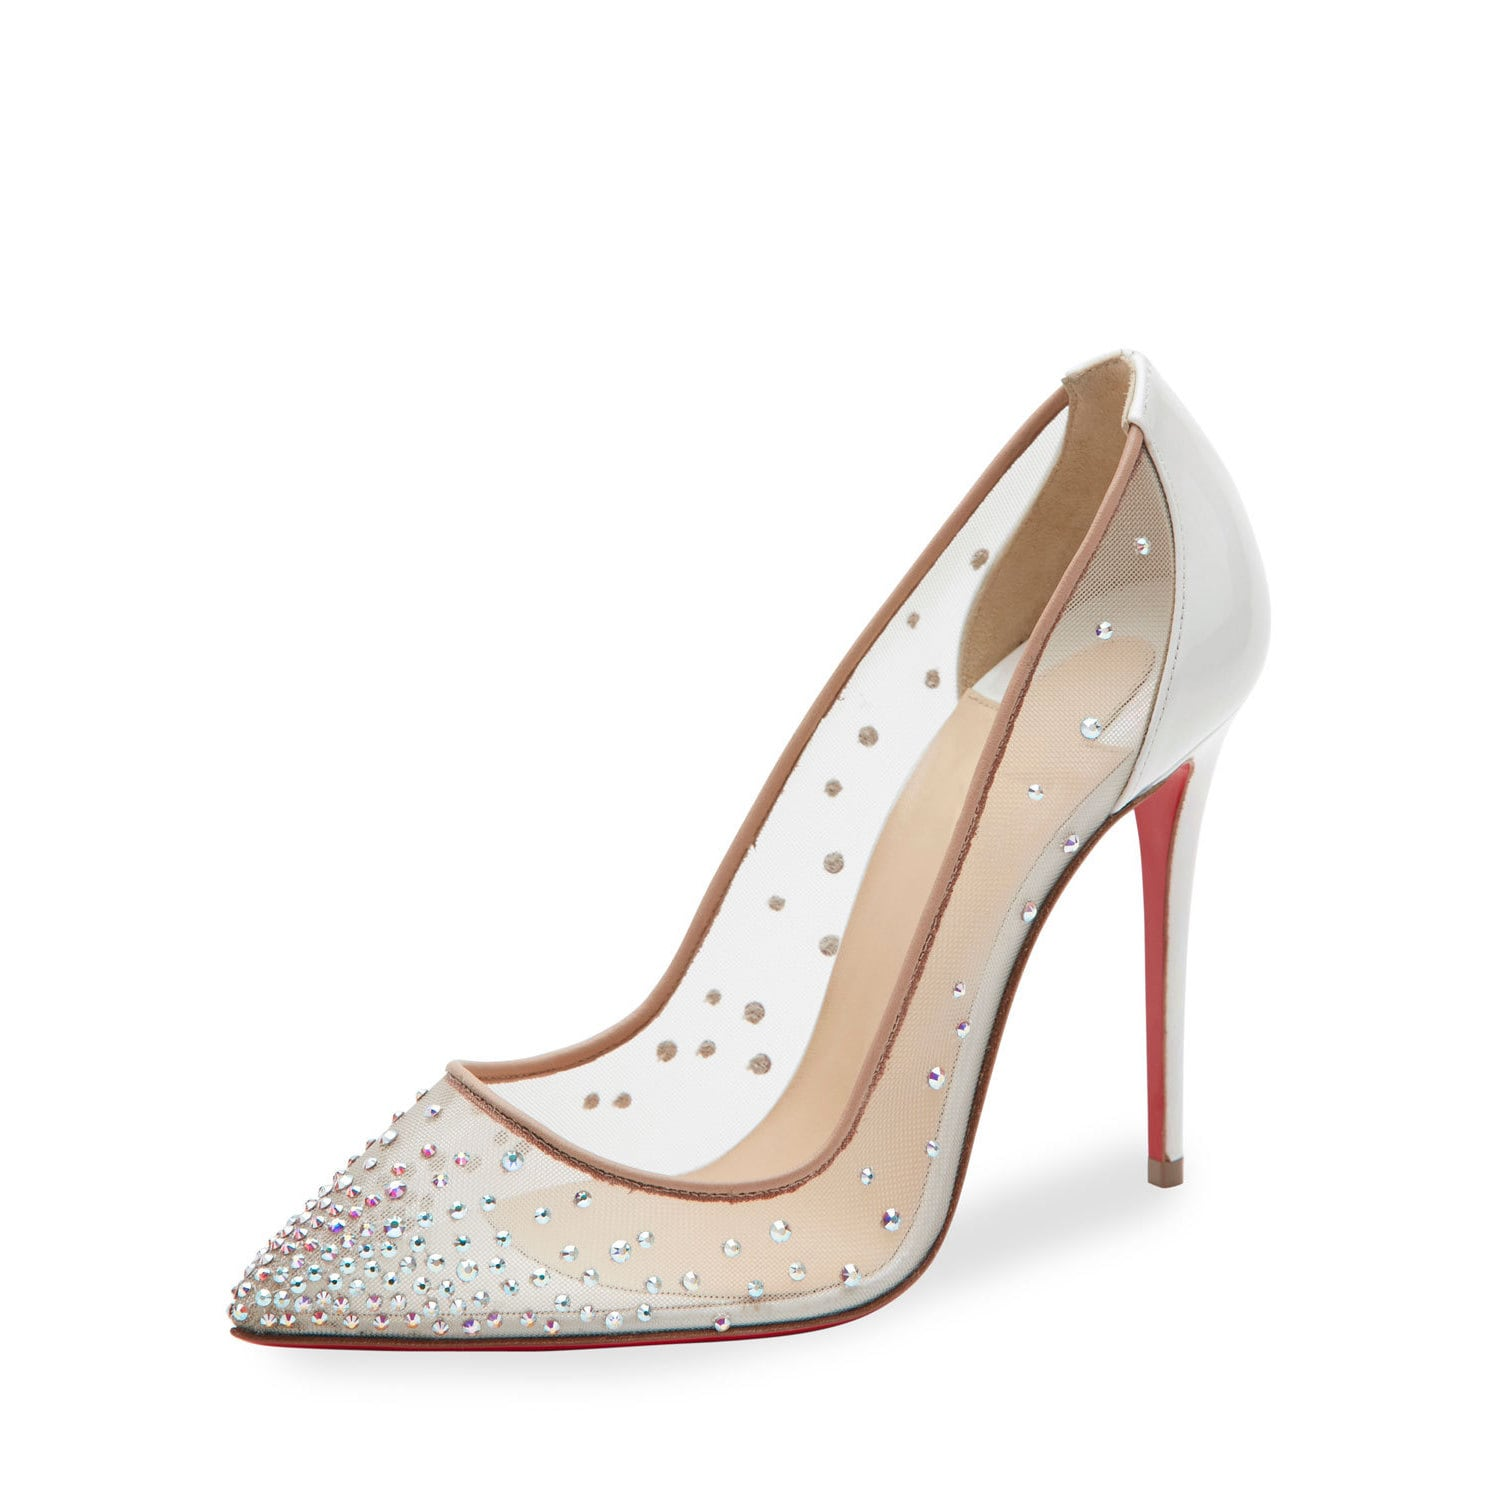 20a6ee16b Shop Christian Louboutin Follies Strass 100 Nude Swarovski Elements Pumps -  Free Shipping Today - Overstock - 15003084